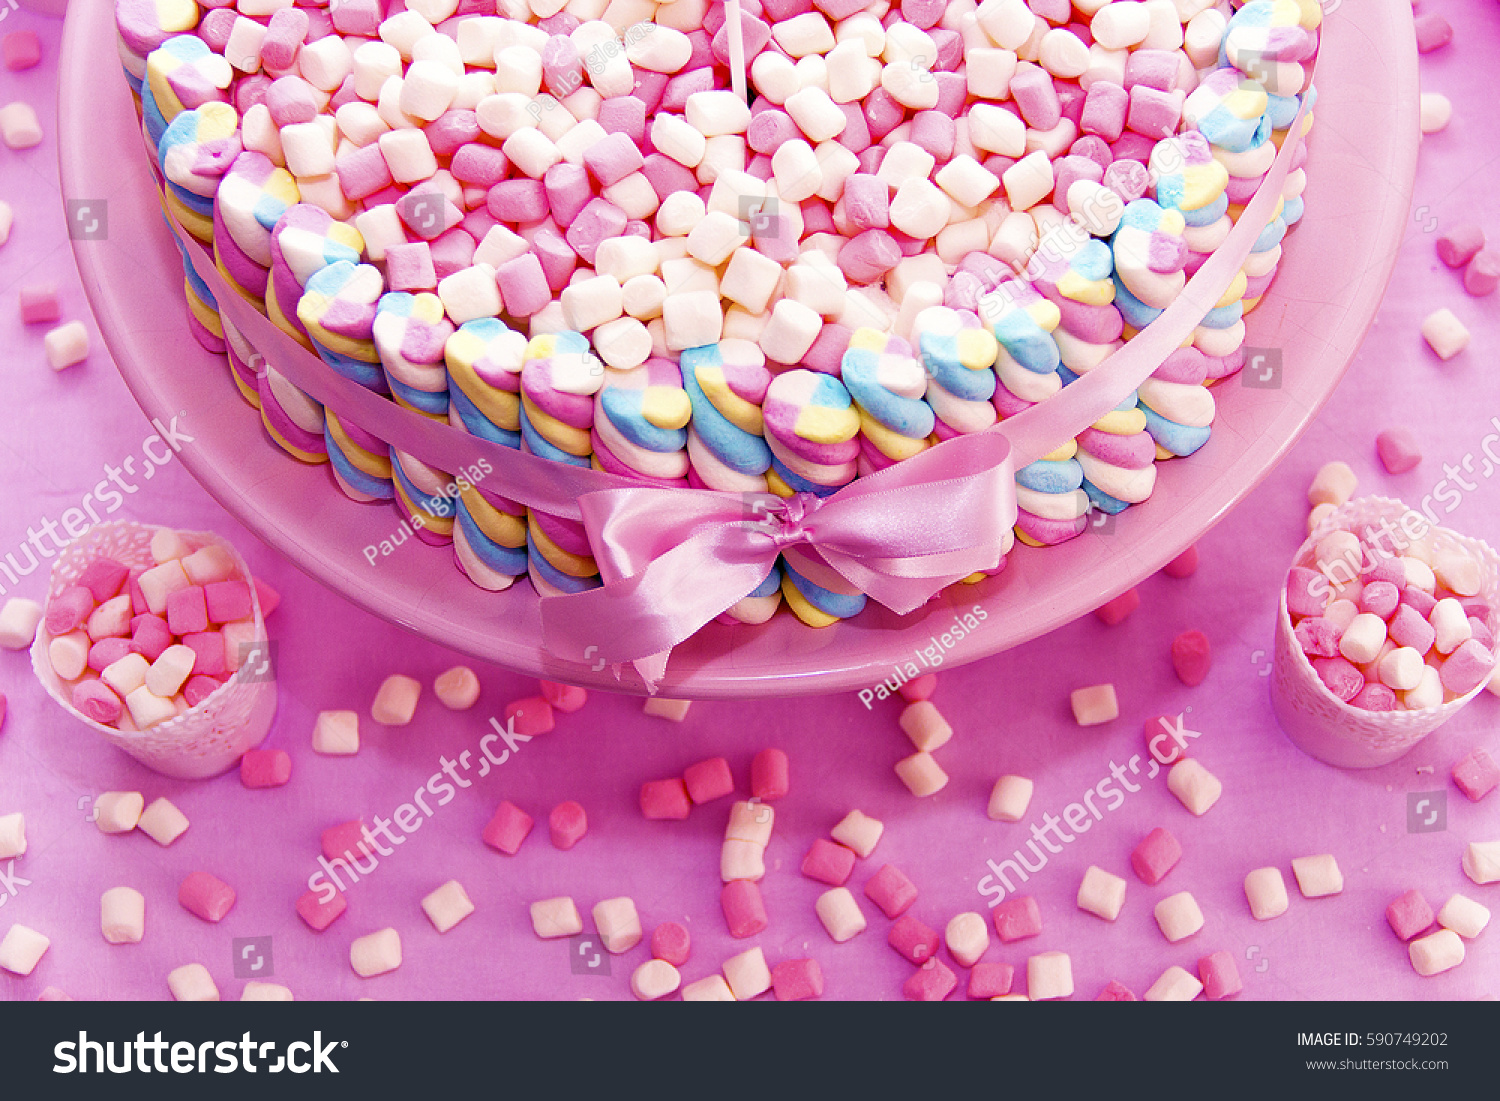 Terrific Girly Birthday Cake Stock Photo Edit Now 590749202 Personalised Birthday Cards Beptaeletsinfo